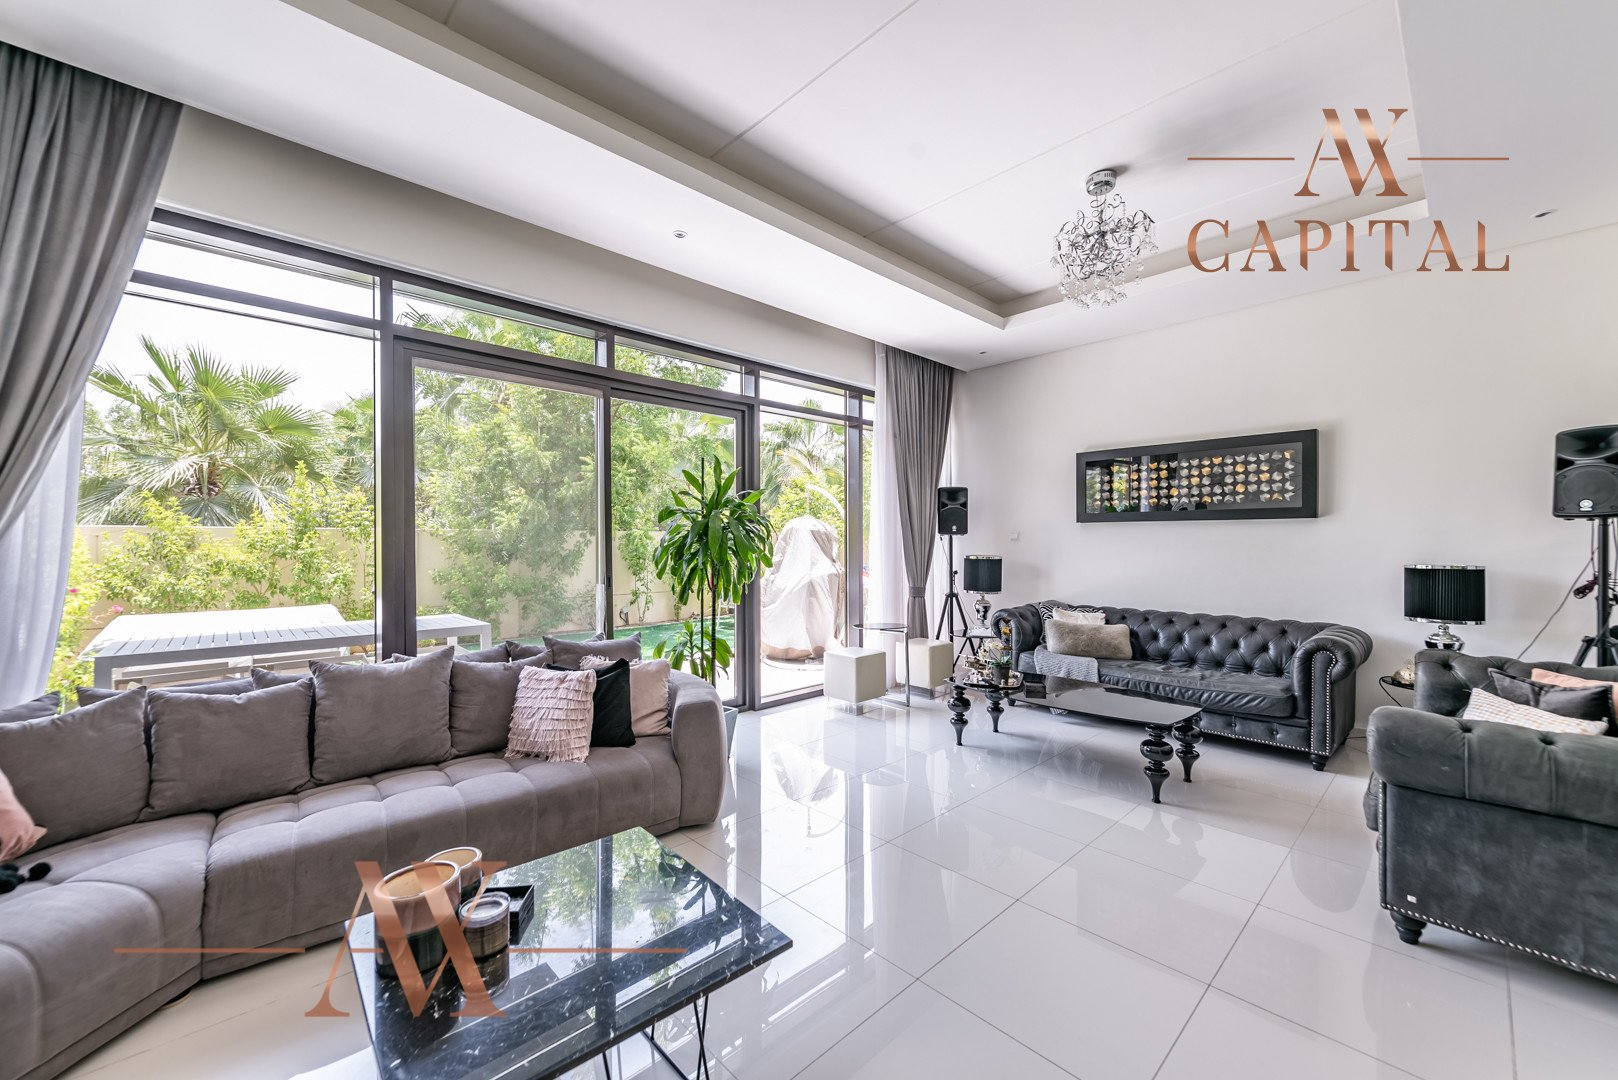 Townhouse for sale in Dubai, UAE, 4 bedrooms, 325.2 m2, No. 23754 – photo 1